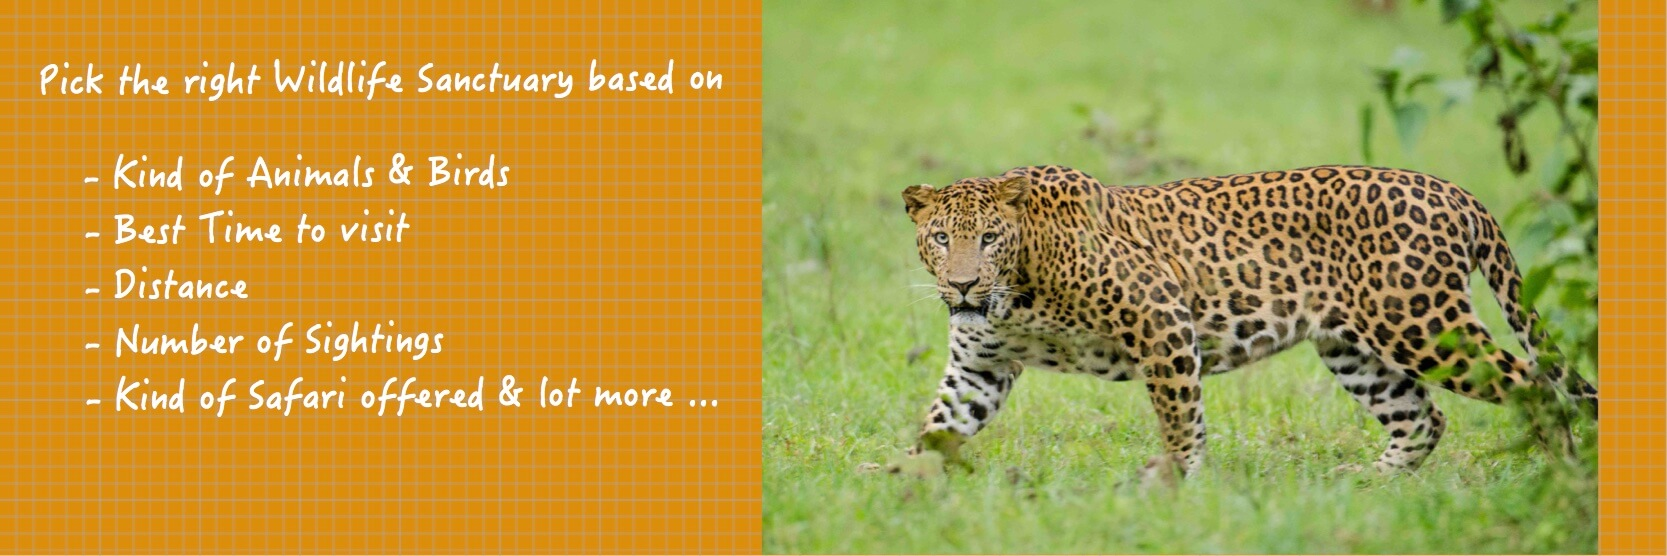 The WildTrails of India app is the best way to get all the details about Indian wildlife sanctuaries (best travel times, animal sightings, accommodations, prices, etc).